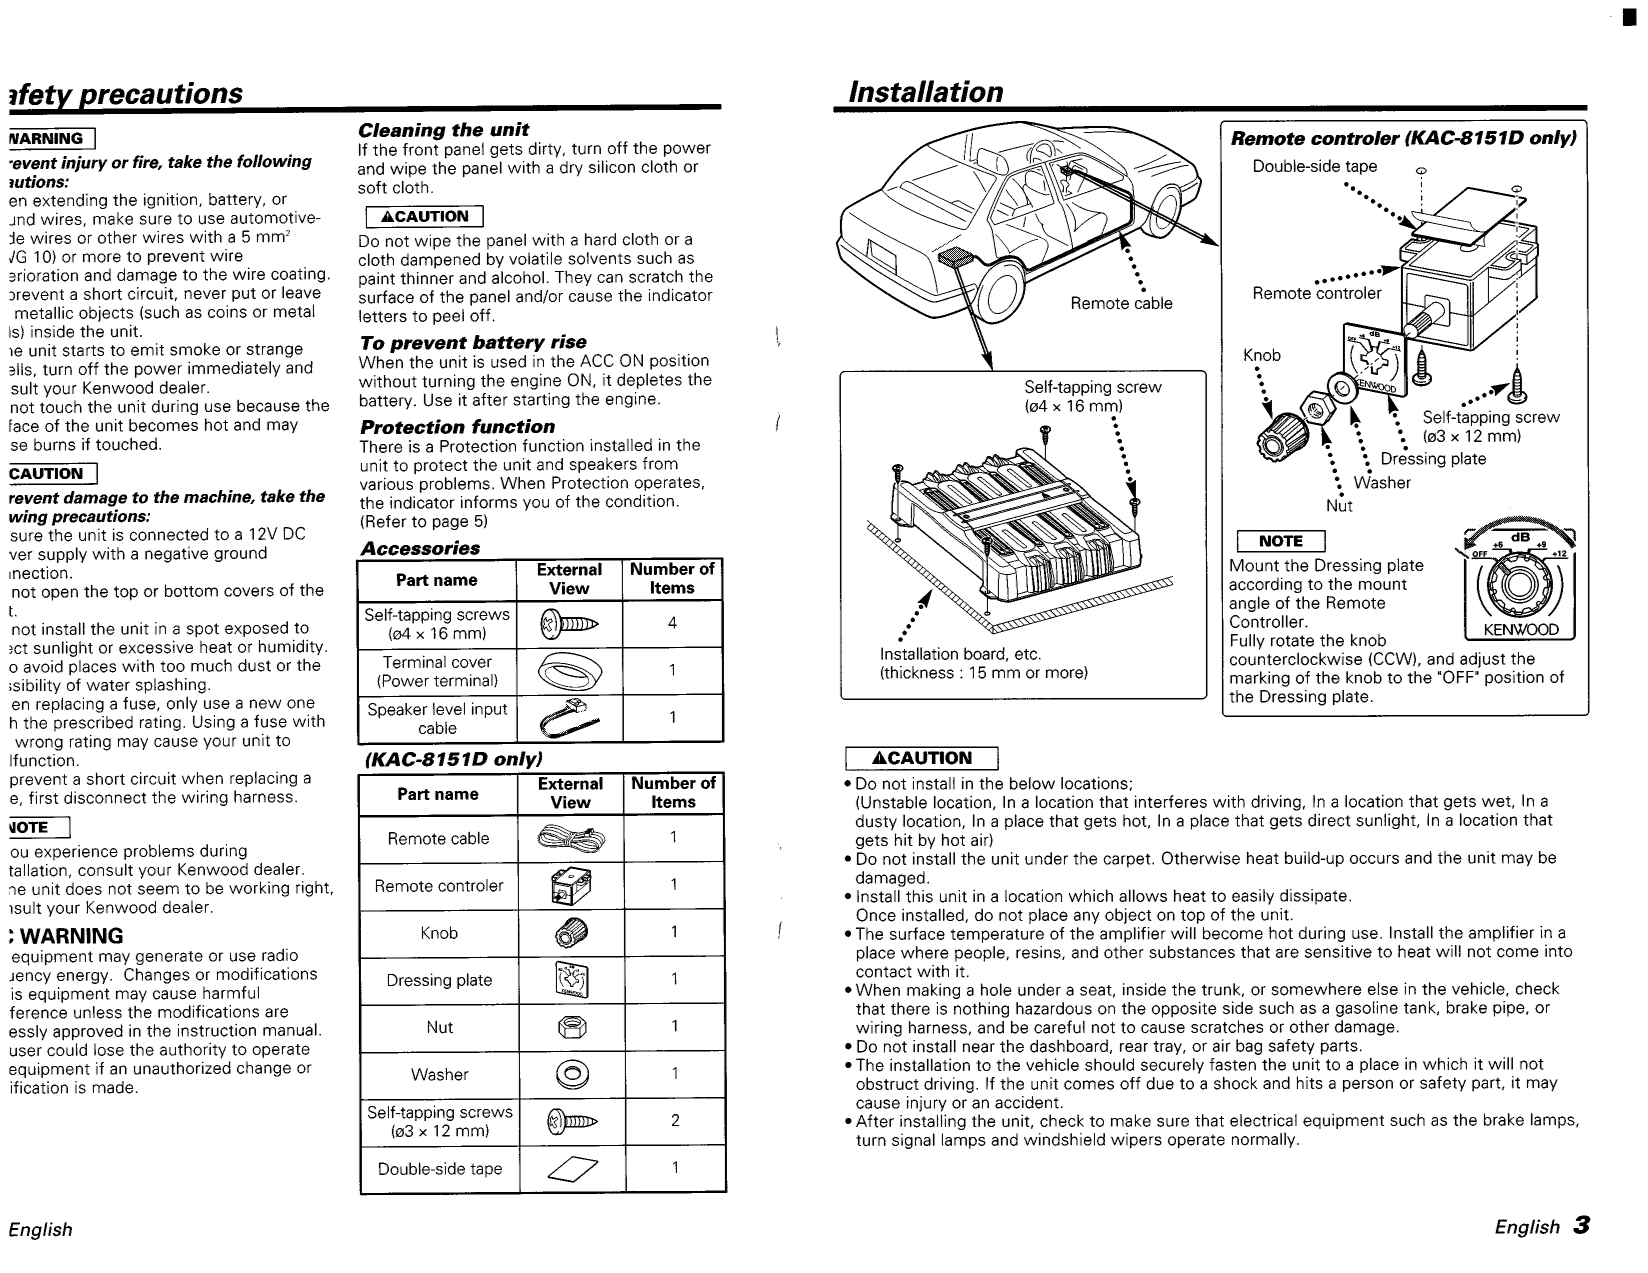 113kac8151.pdf 2 pdf manual for kenwood car amplifier kac 8101d kenwood kac 8101d wiring diagram at panicattacktreatment.co